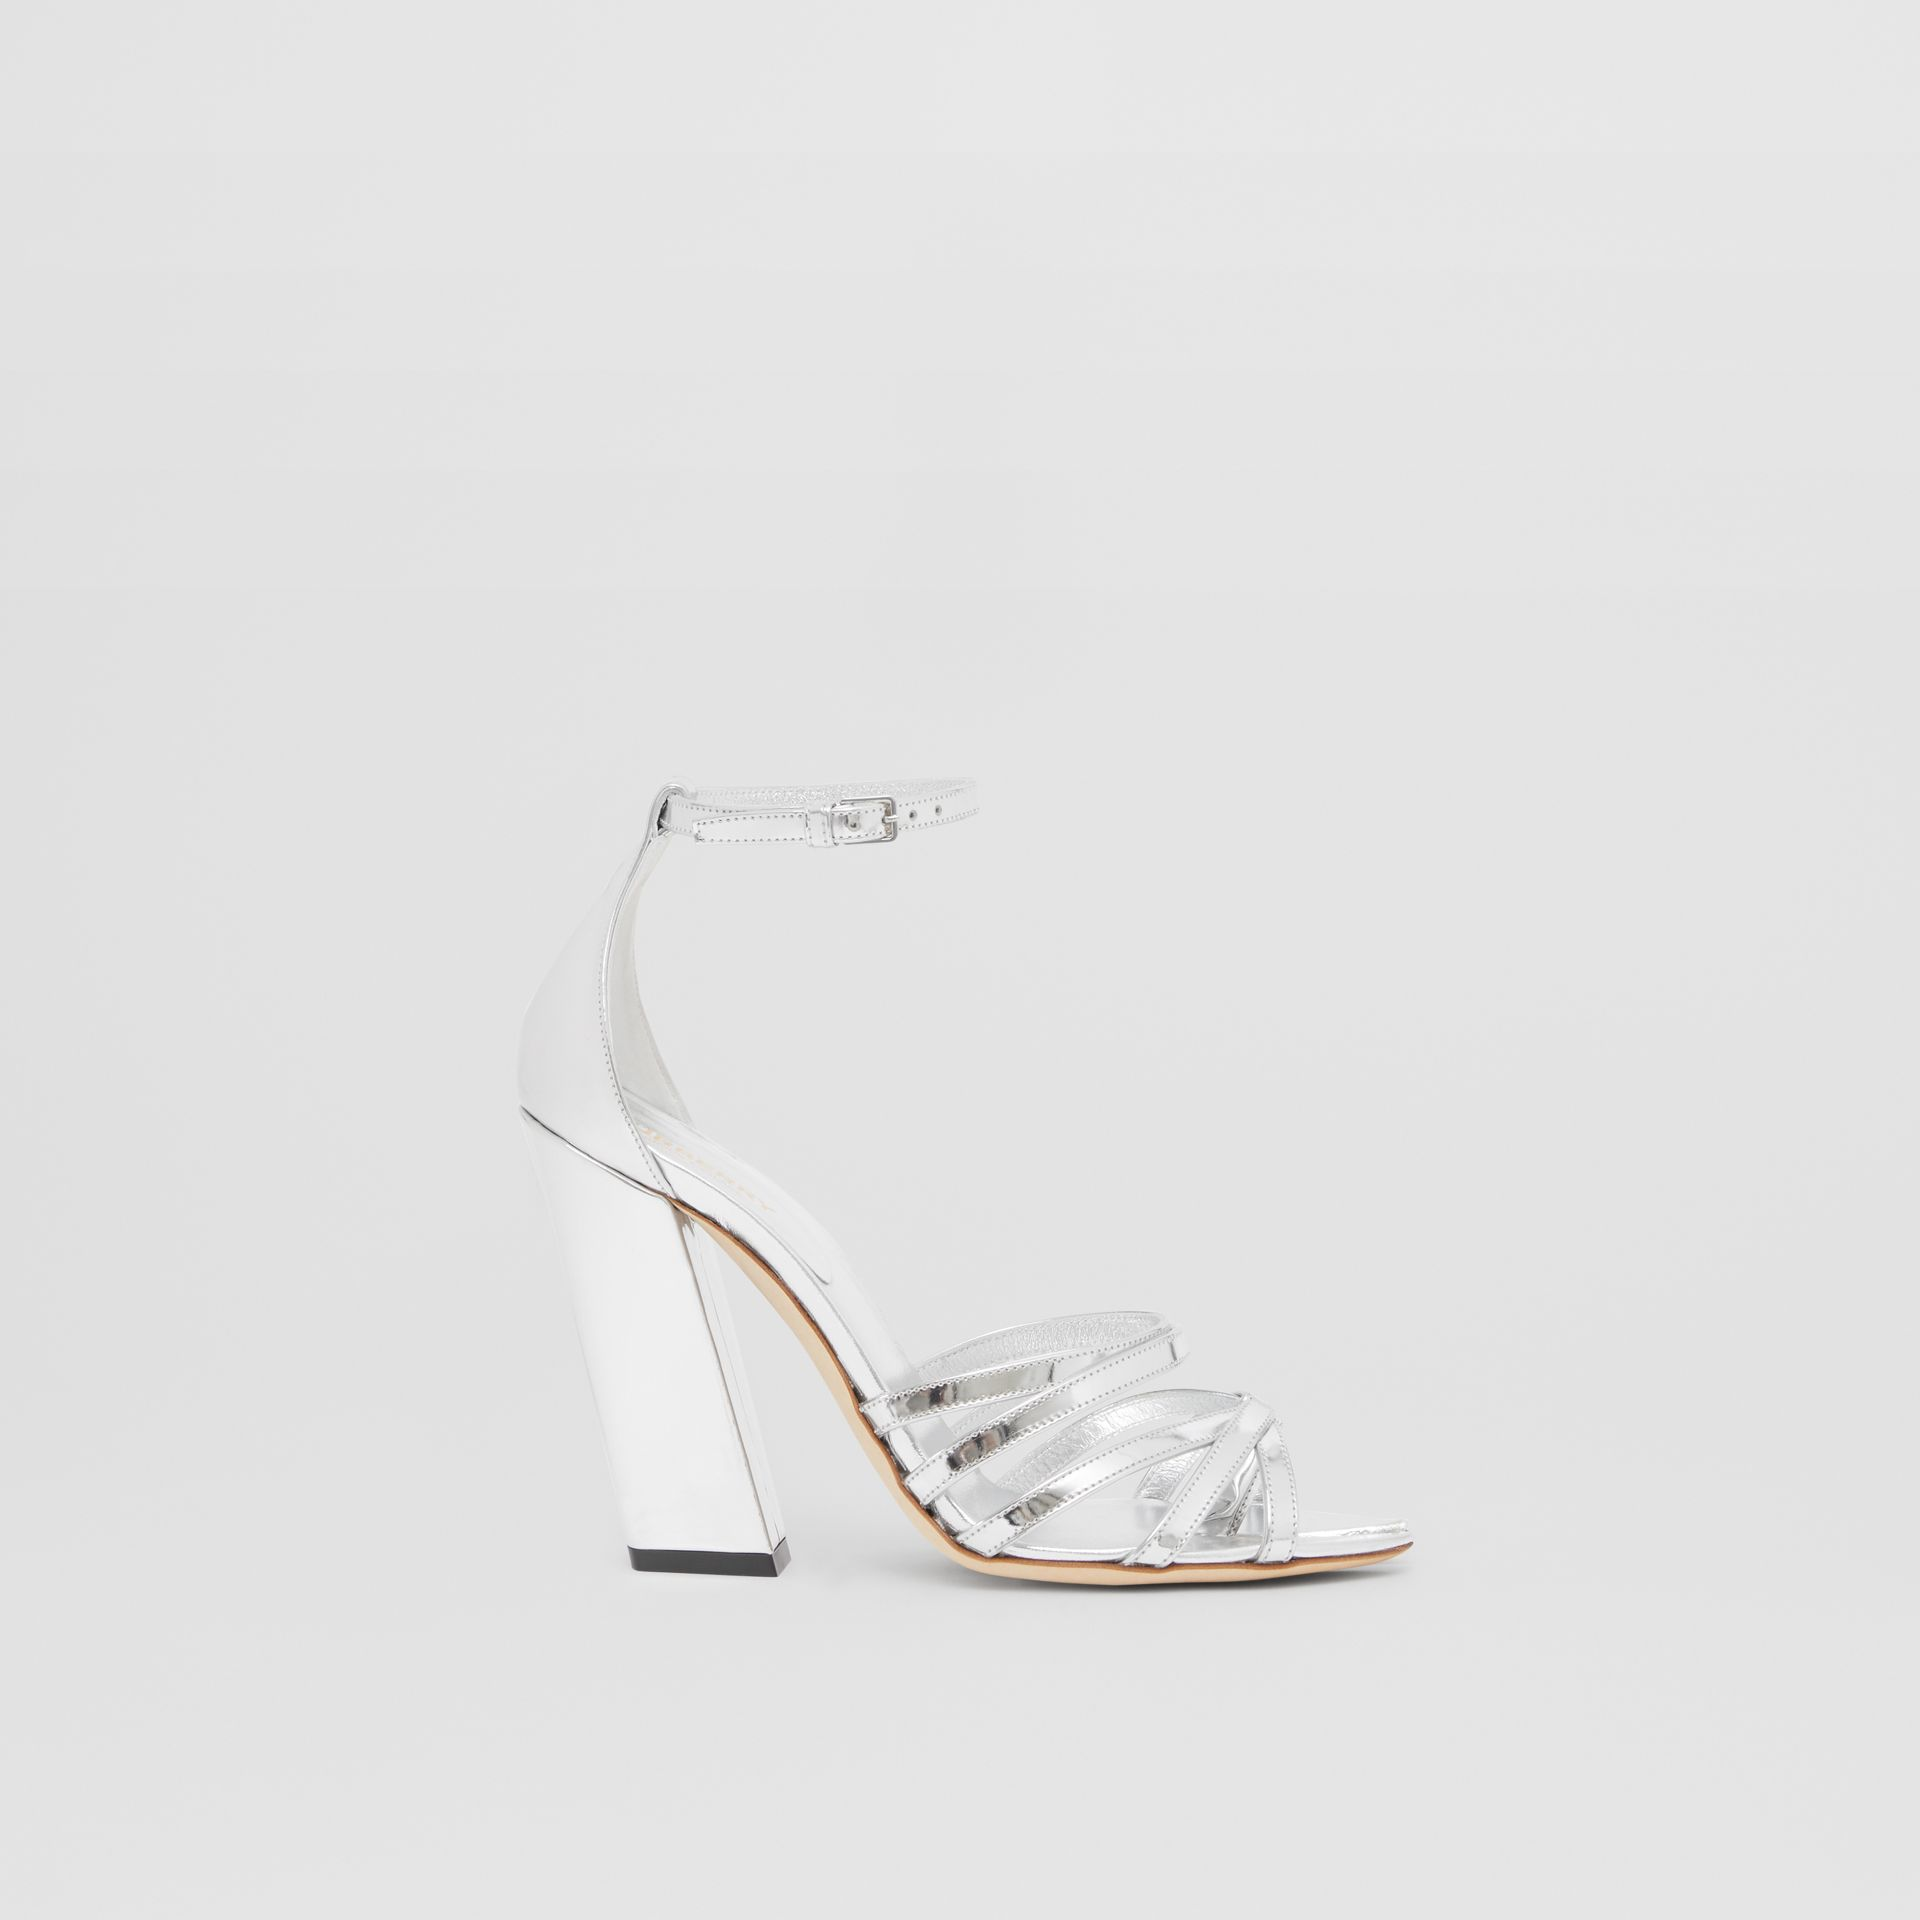 Split-toe Detail Metallic Leather Sandals in Argent - Women | Burberry - gallery image 4